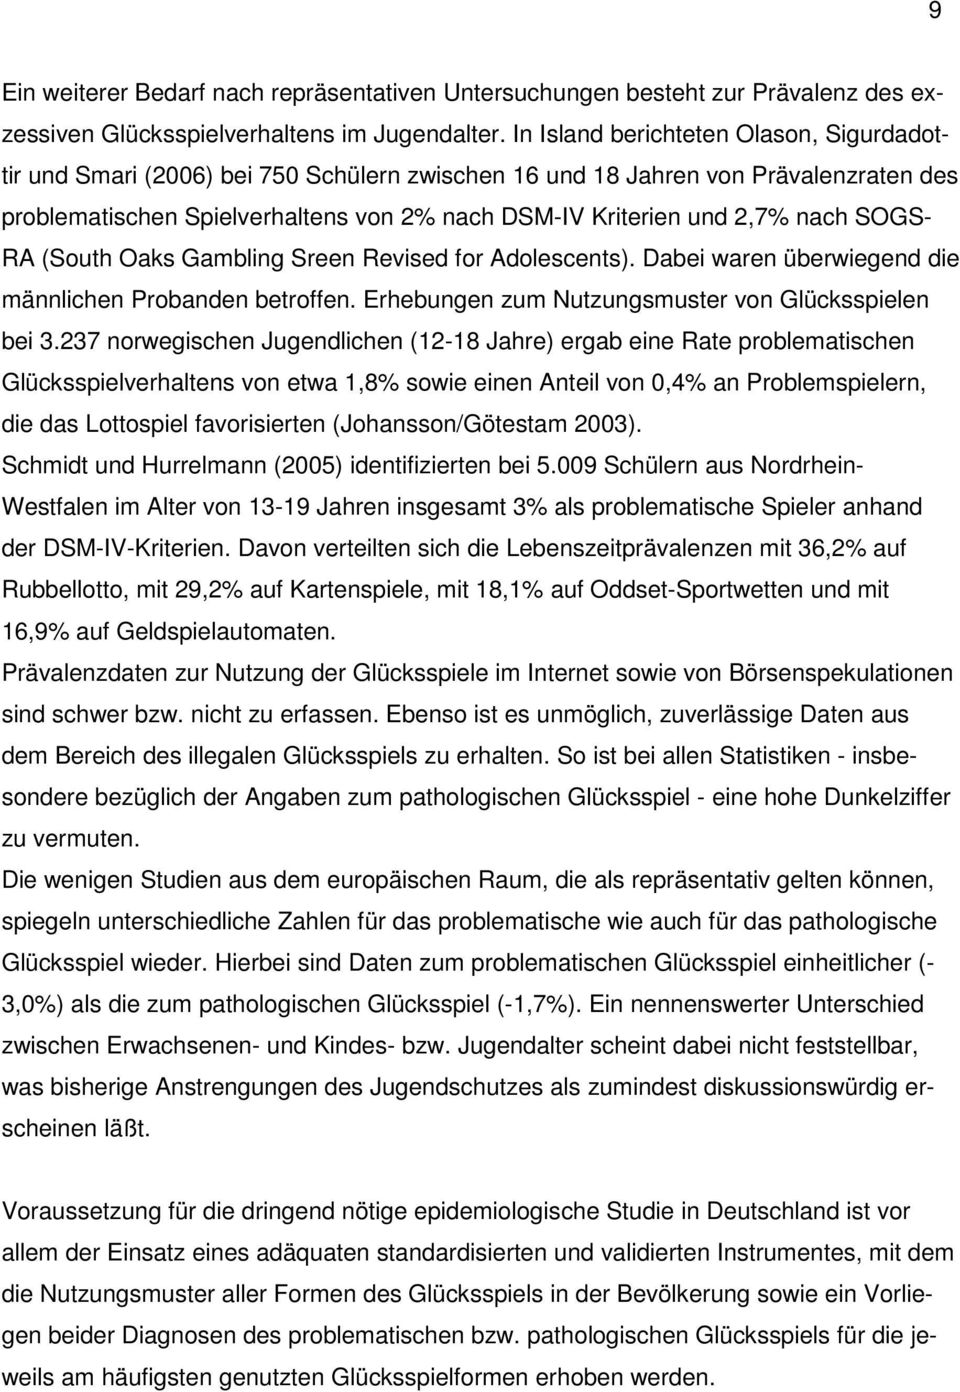 nach SOGS- RA (South Oaks Gambling Sreen Revised for Adolescents). Dabei waren überwiegend die männlichen Probanden betroffen. Erhebungen zum Nutzungsmuster von Glücksspielen bei 3.